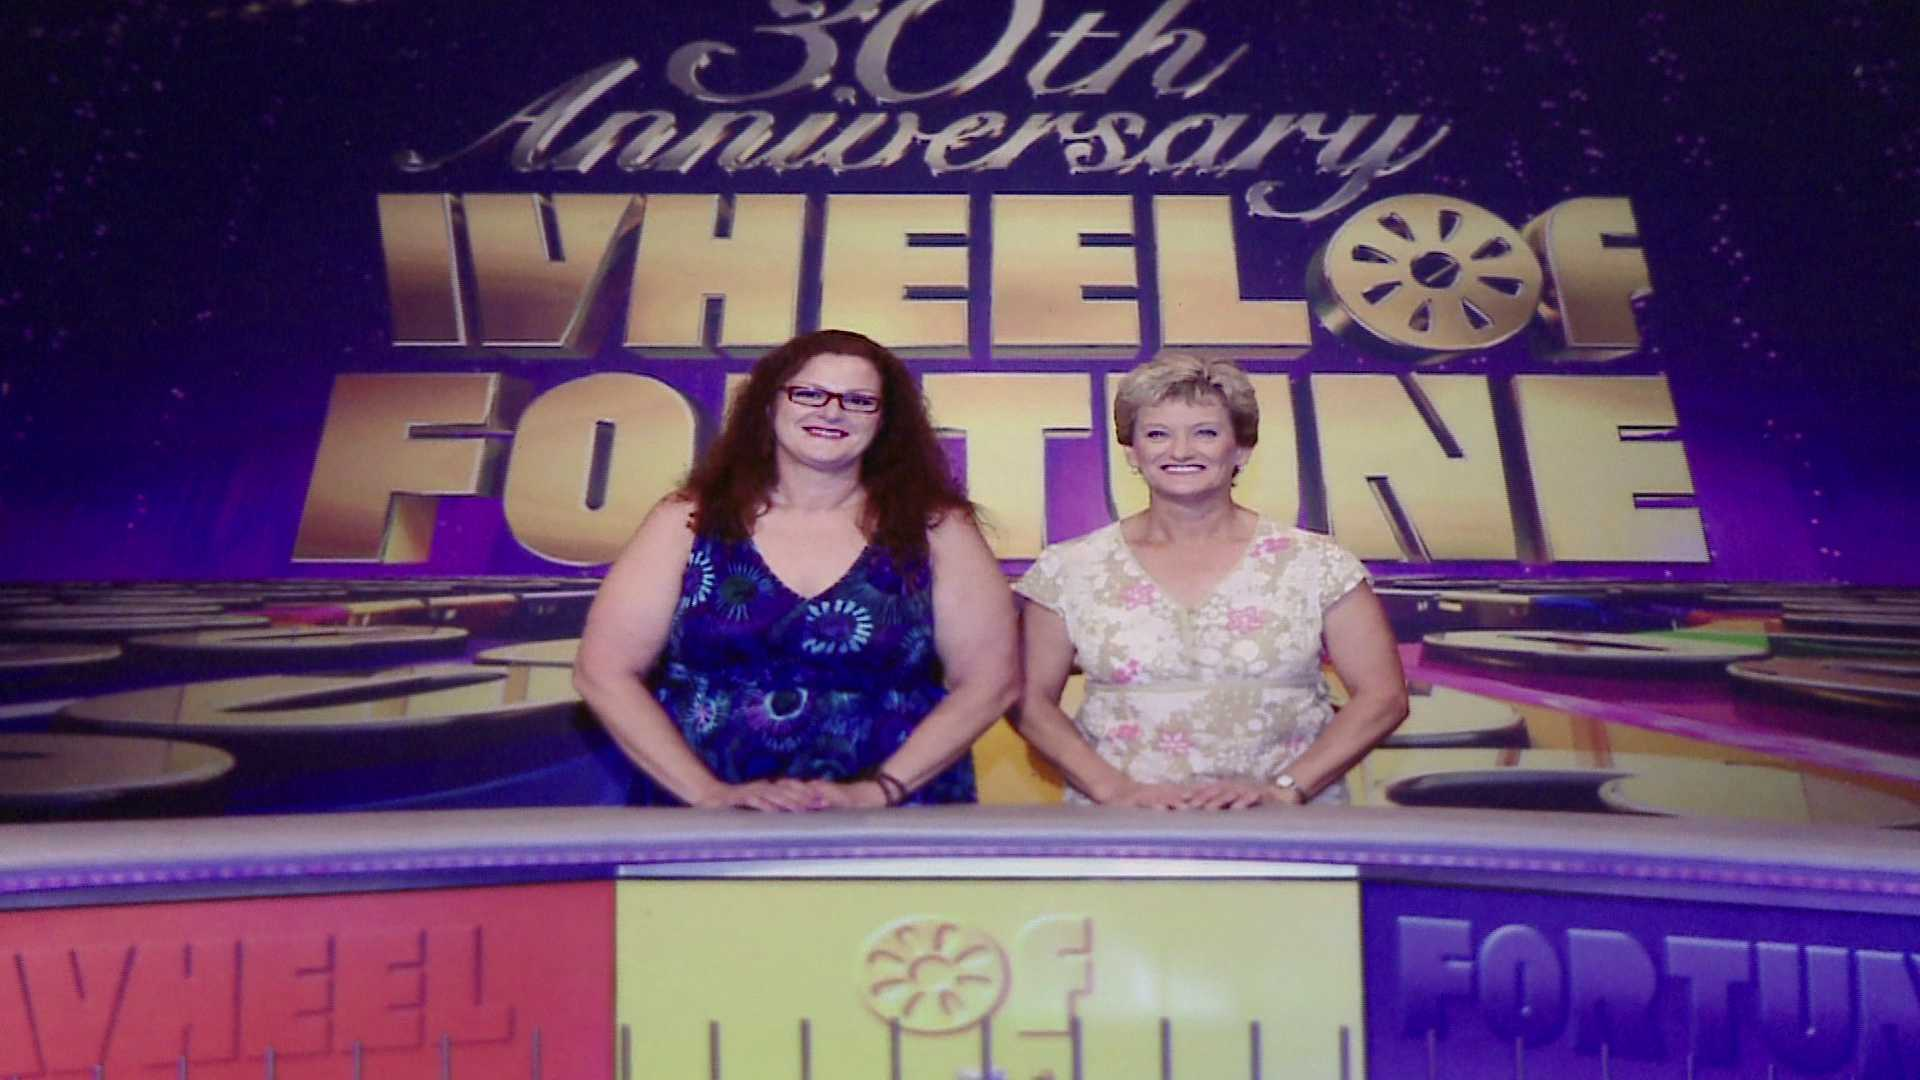 wheeloffortune